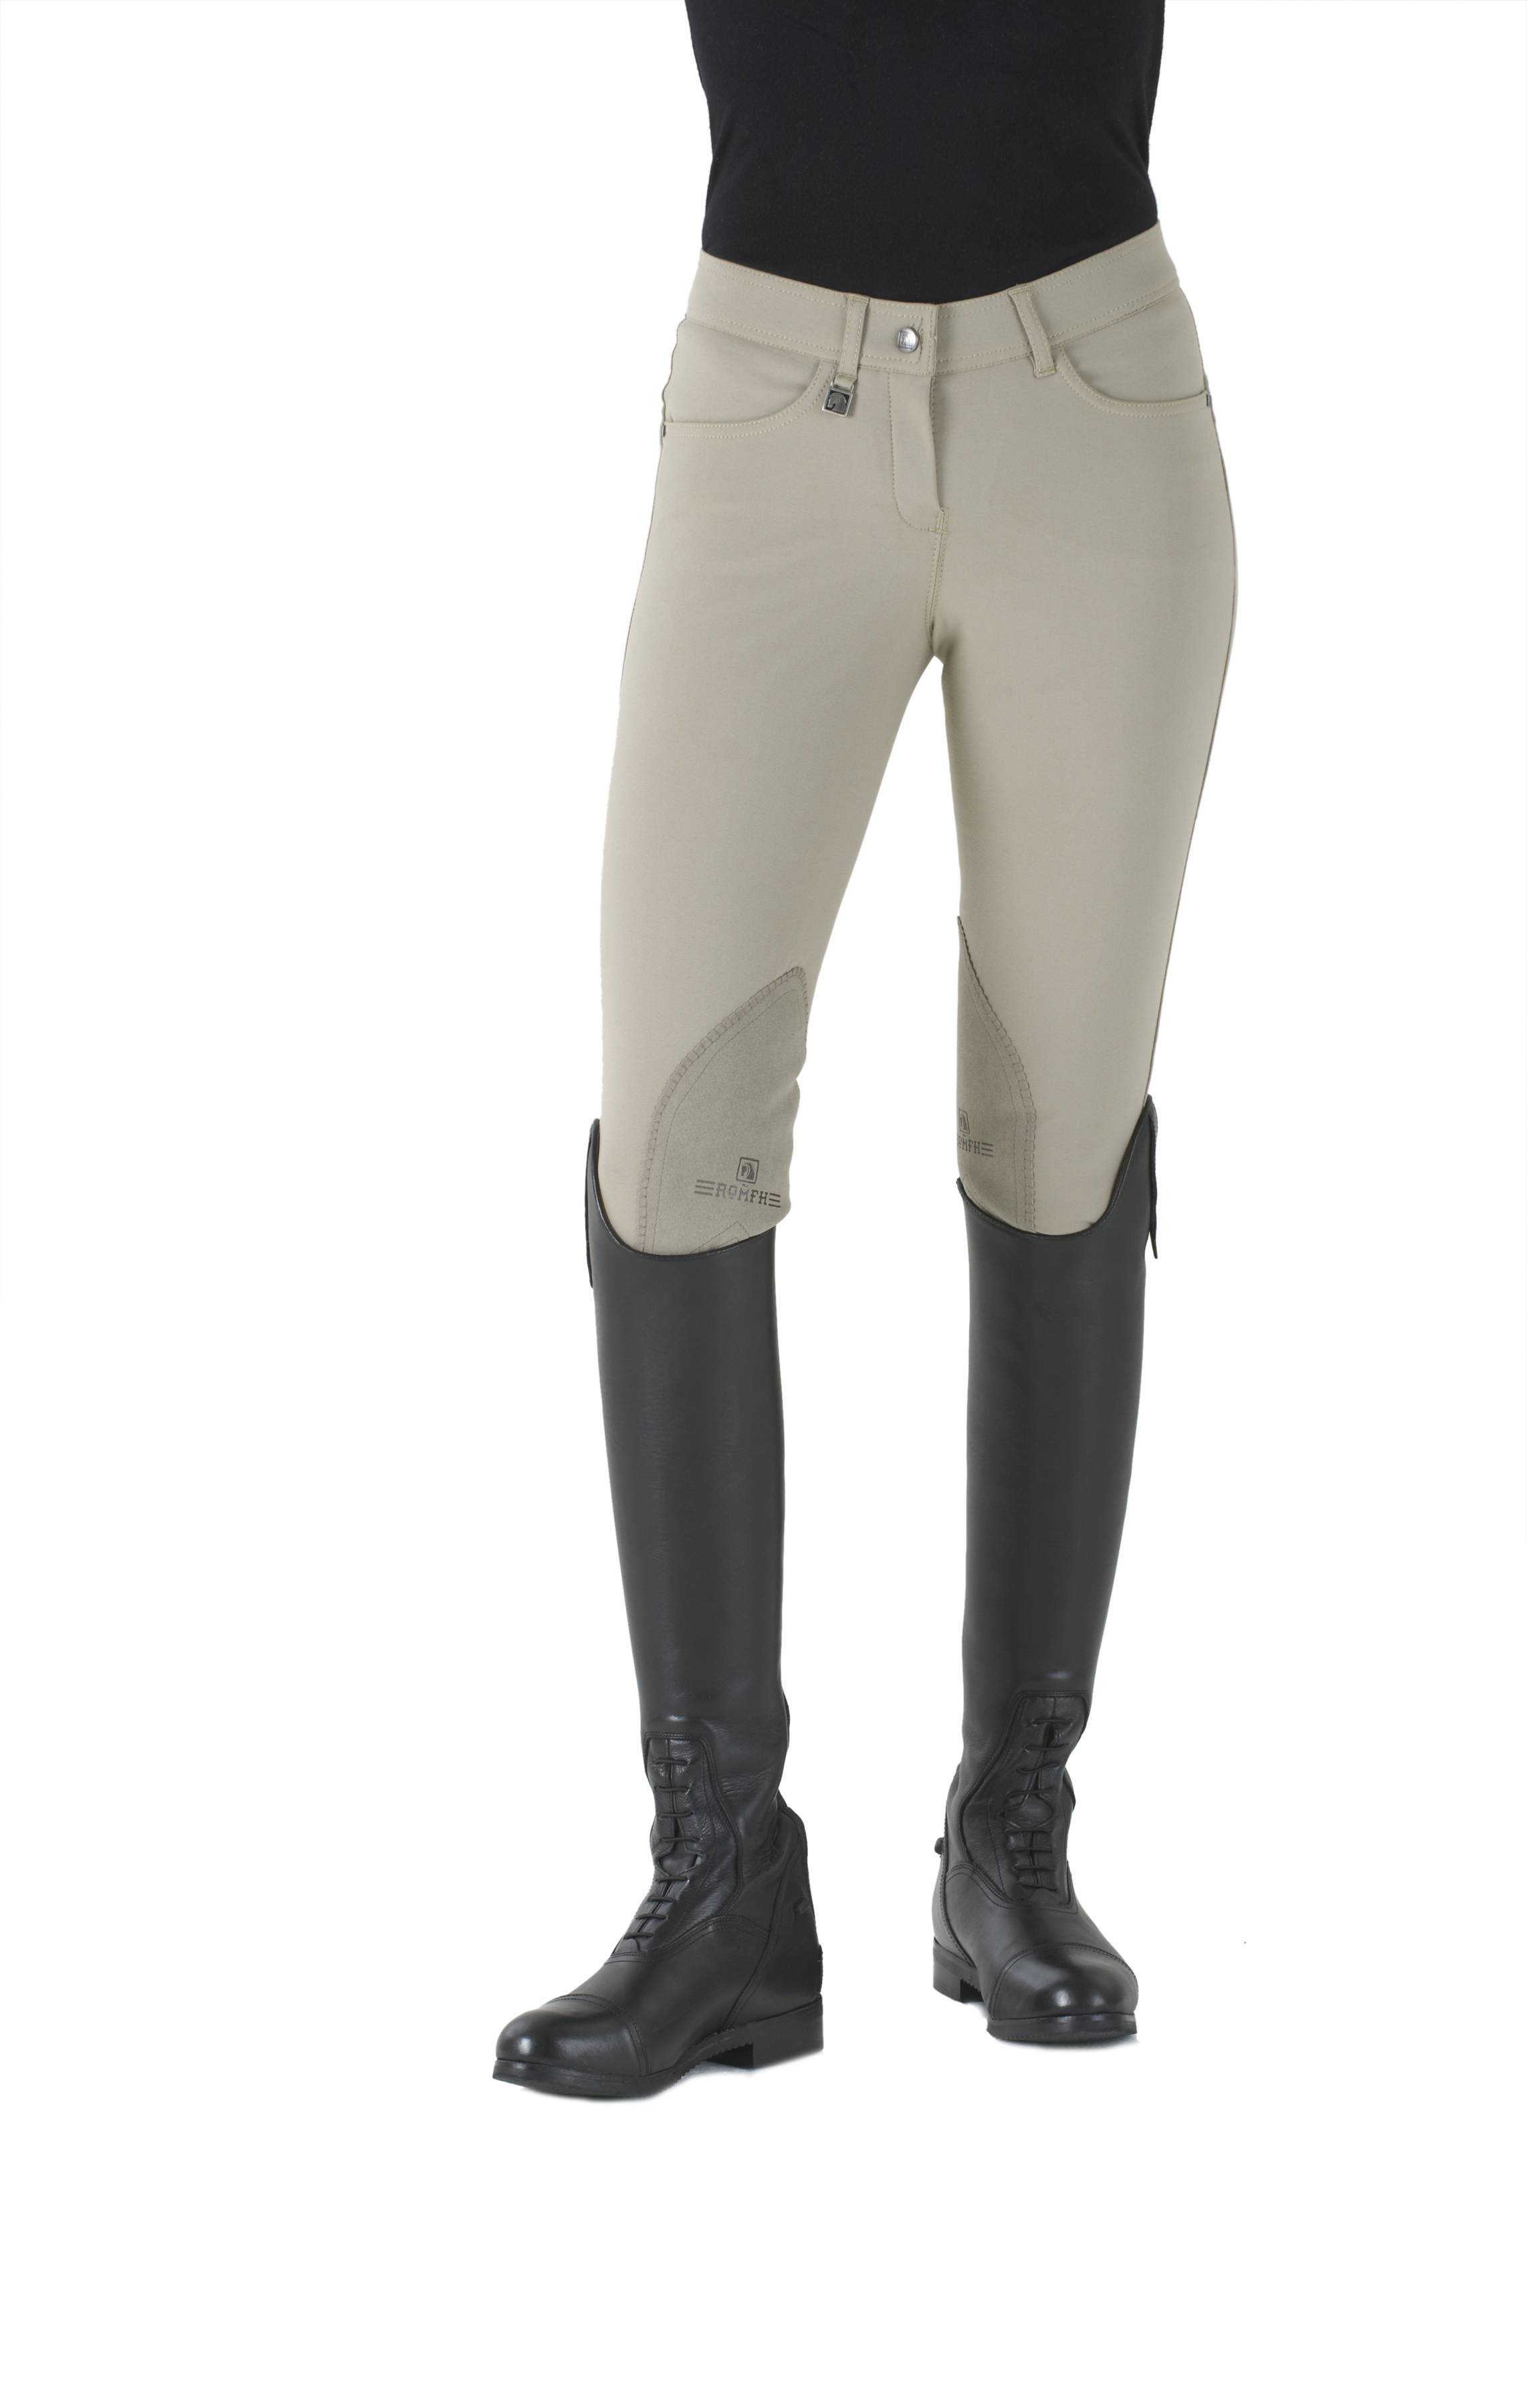 Romfh Ladies International Knee Patch Breeches